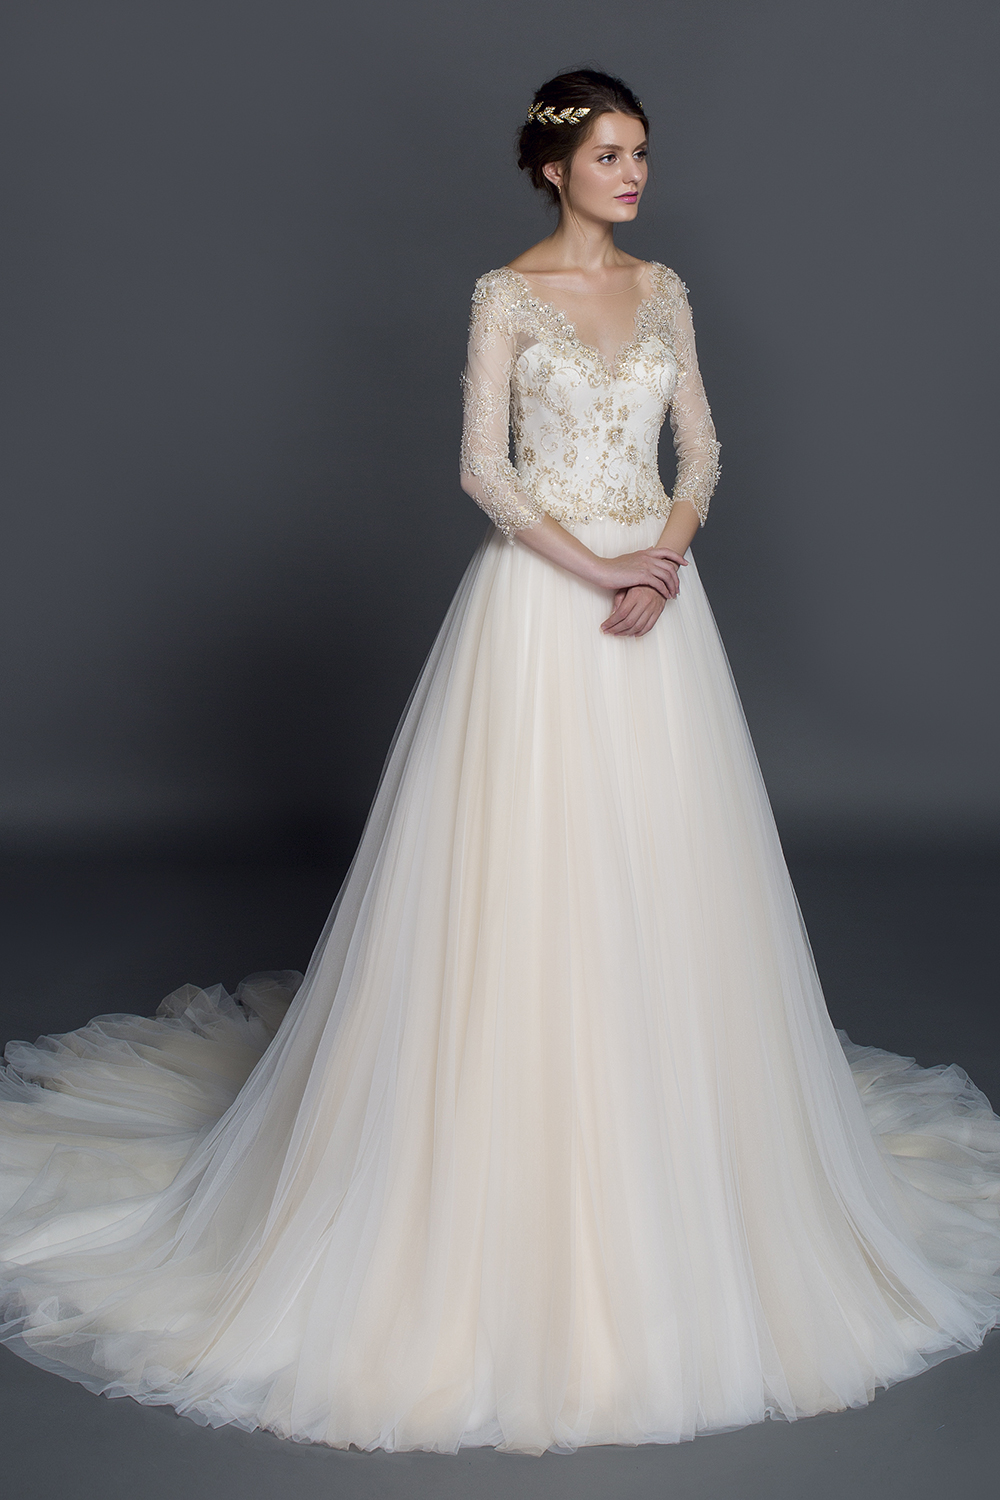 Stunning Champagne Lace Appliqued Ball Gown Winter Wedding Dress ...